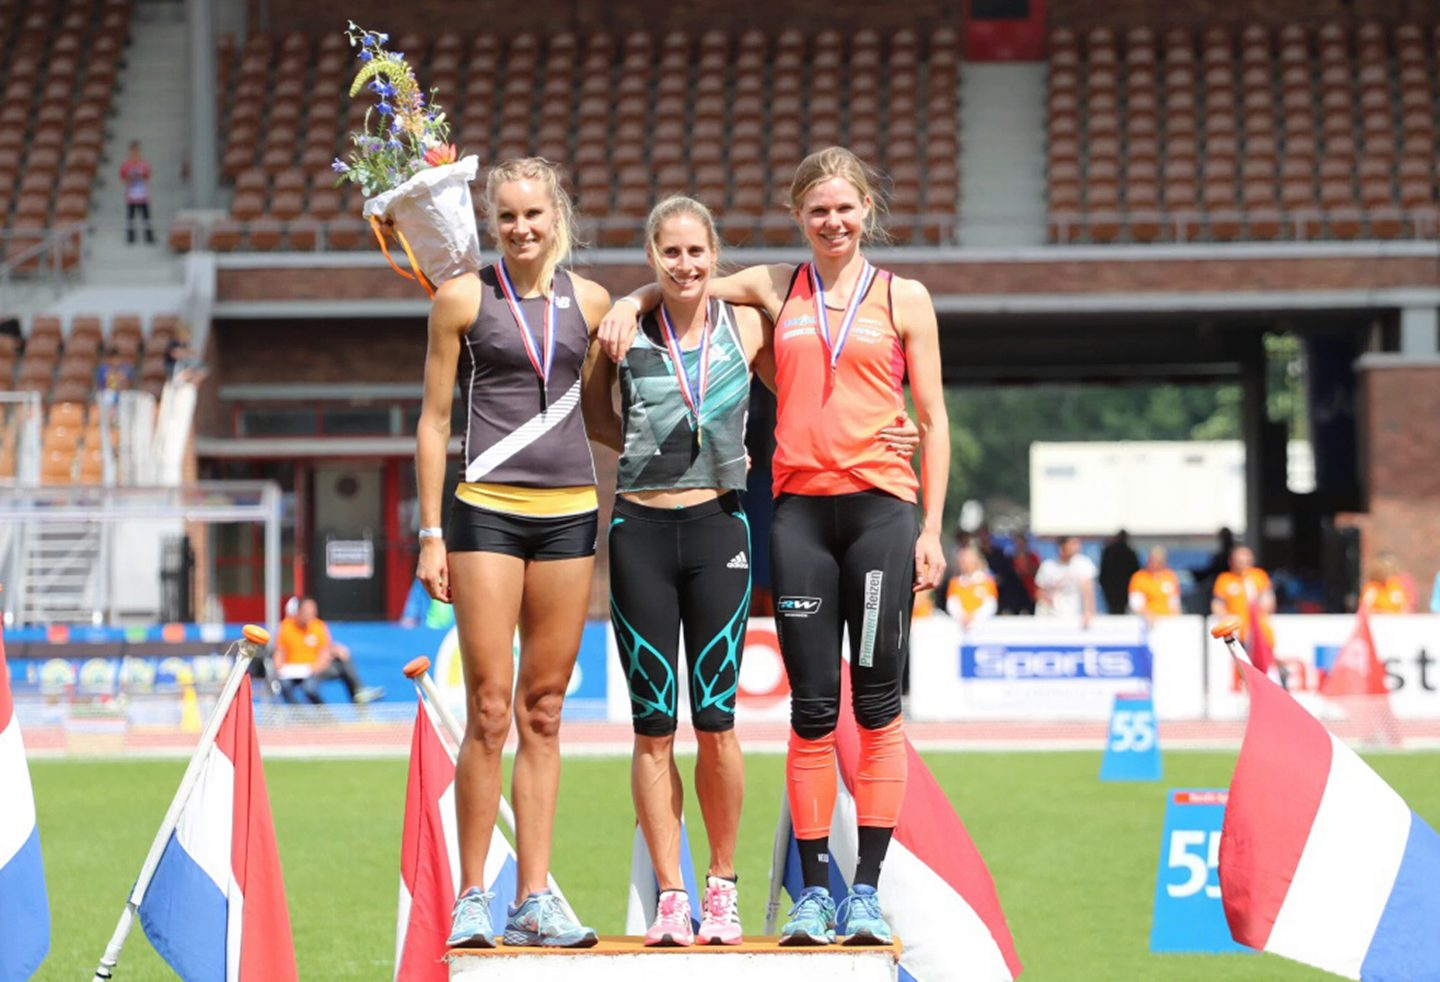 Three young athletes standing together on the winners' rostrum during an award ceremony. winning, setbacks, goal setting, achieving success, GamePlan A